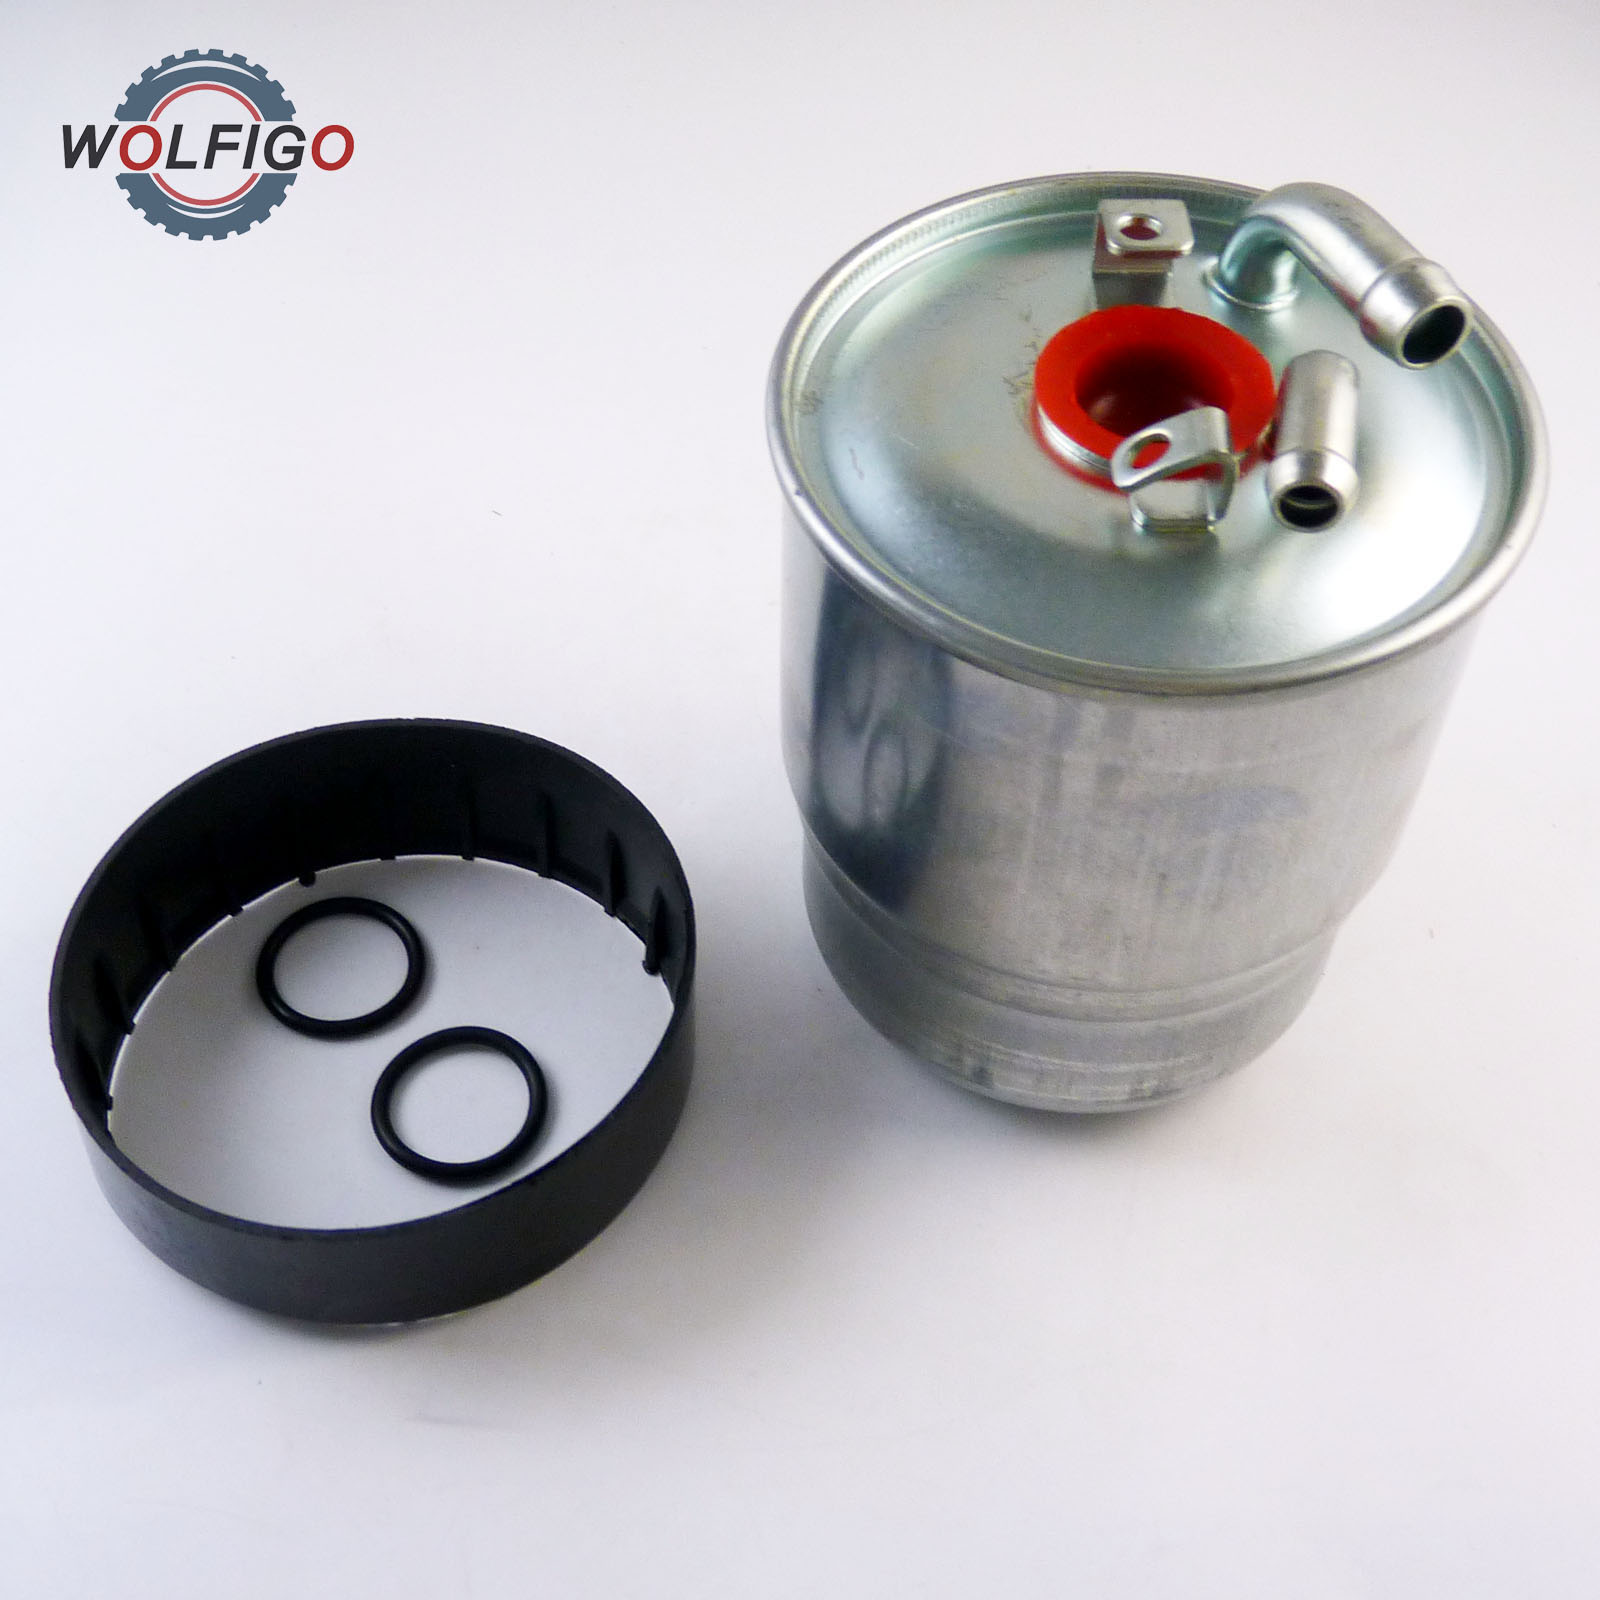 wolfigo fuel filter 6420920501 for mercedes benz r350 gl320 e320 for dodge freightliner sprinter 2500 dodge sprinter 3500 [ 1600 x 1600 Pixel ]